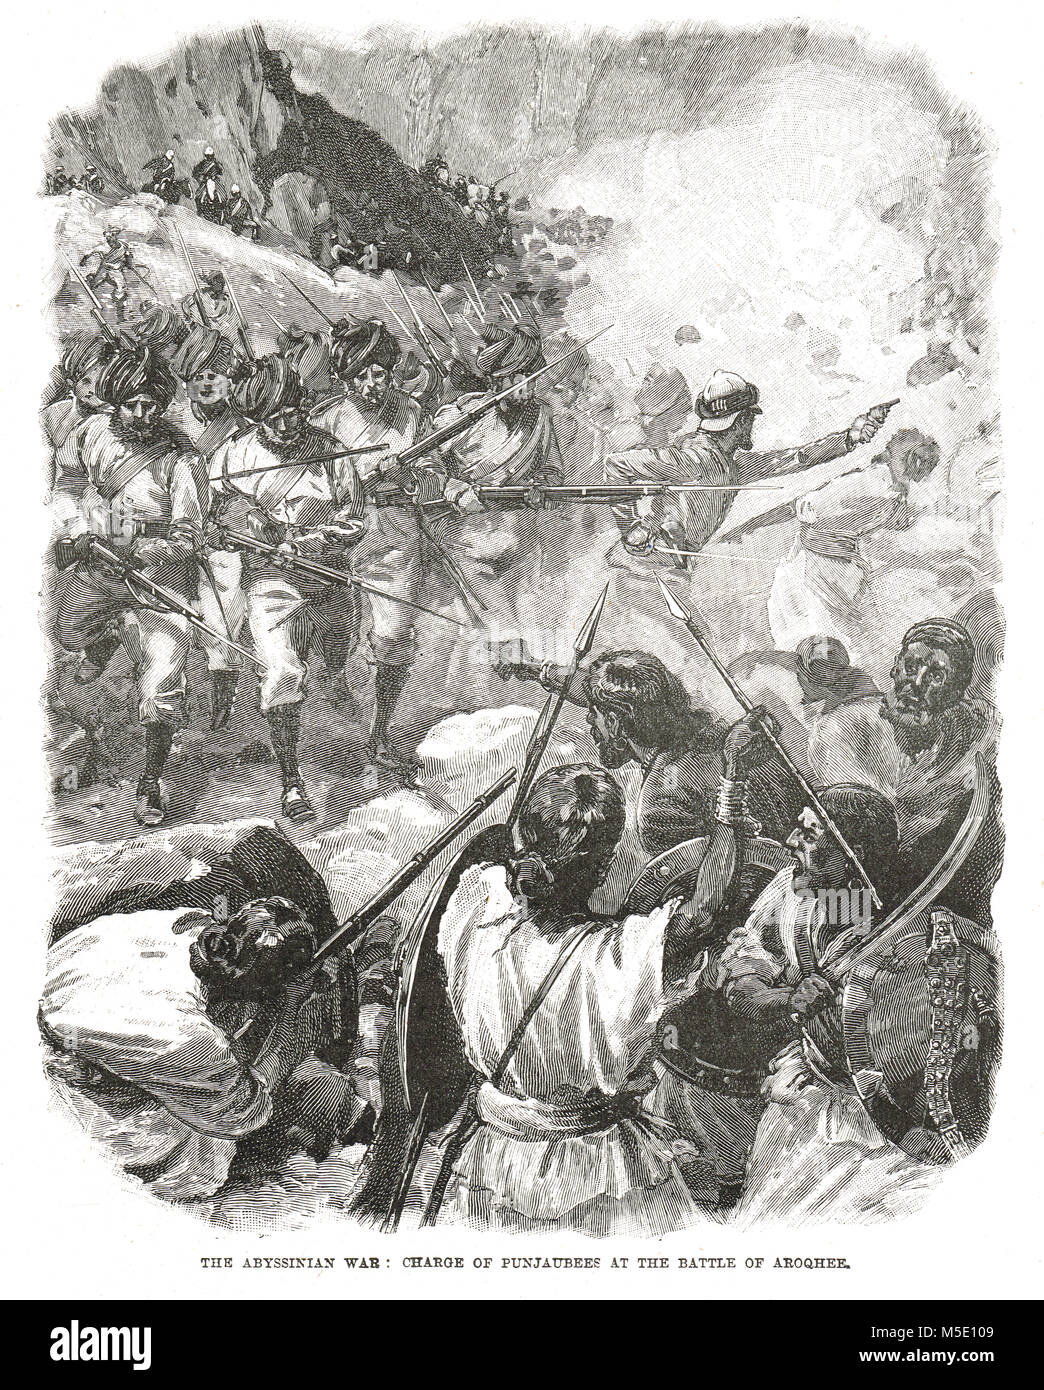 Charge à Arogye les Punjabis, La Bataille de Magdala, avril 1868, l'expédition britannique à Photo Stock